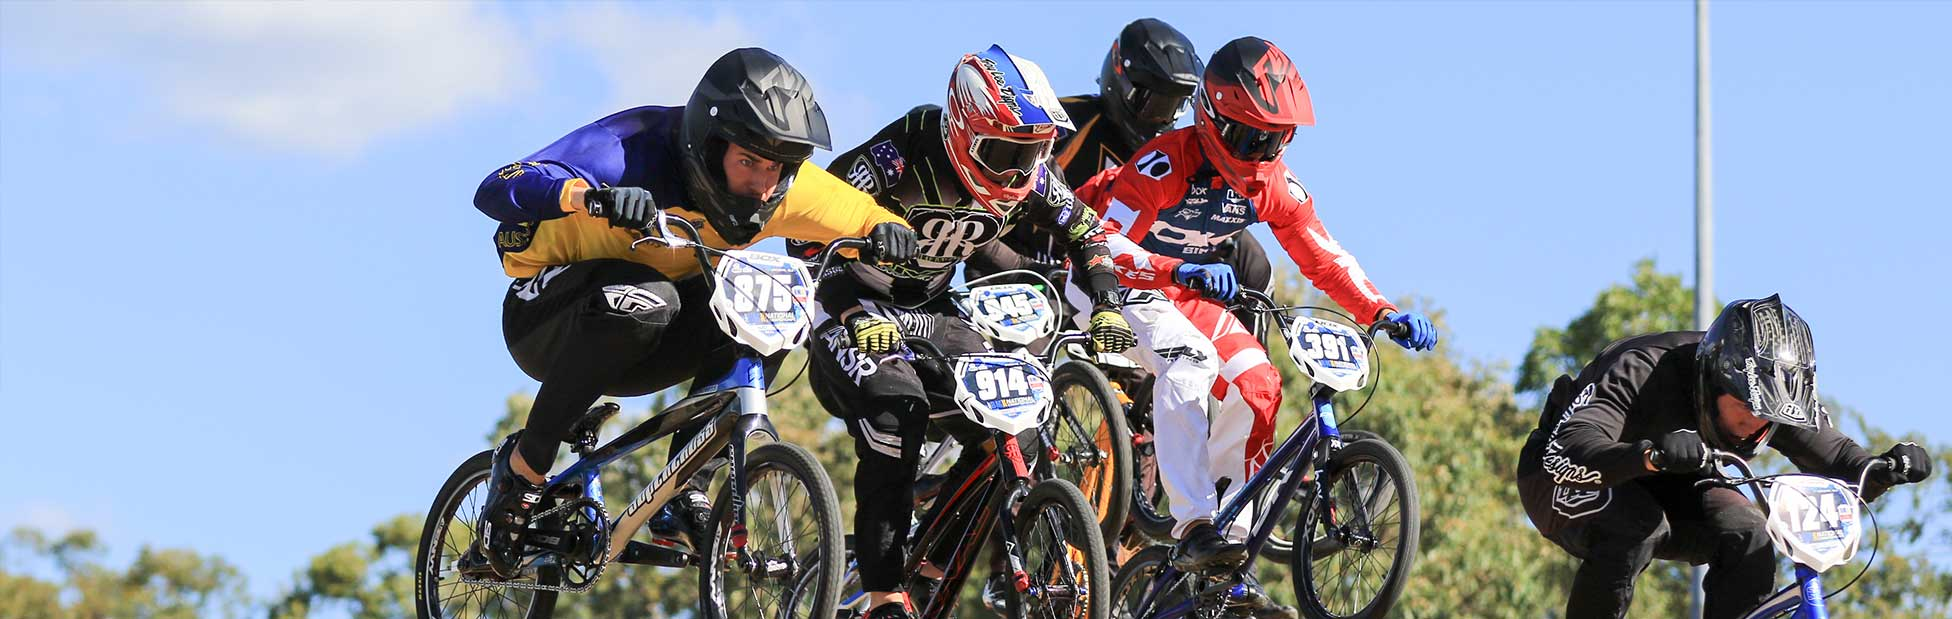 Five racing BMX riders on jump in full gear